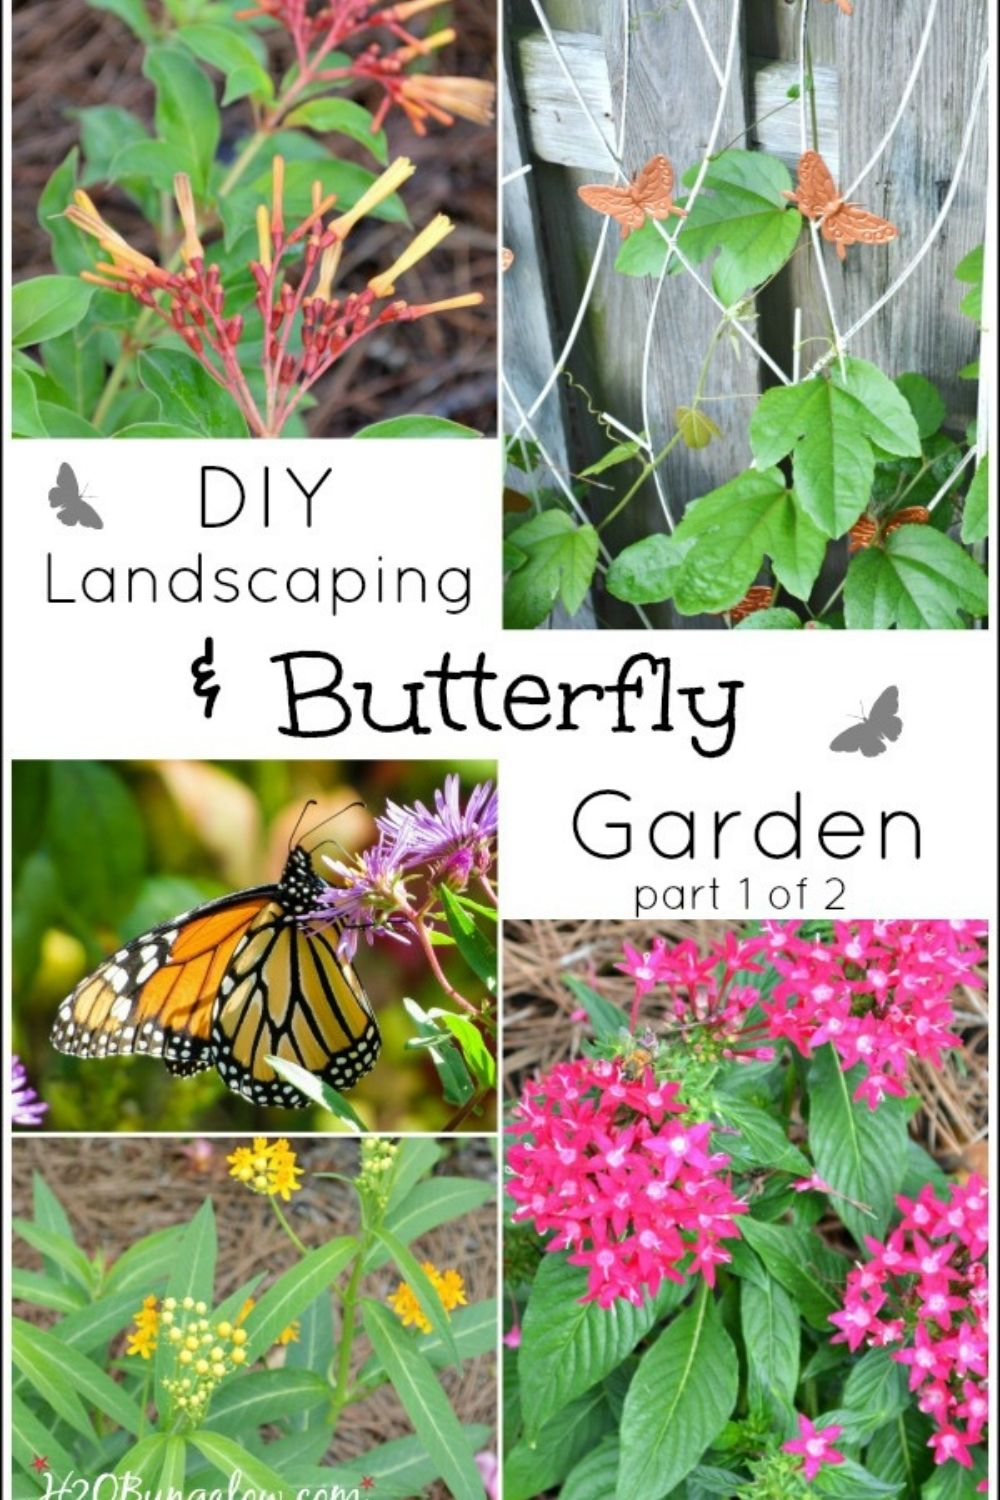 image collage of butterfly garden with text overlay